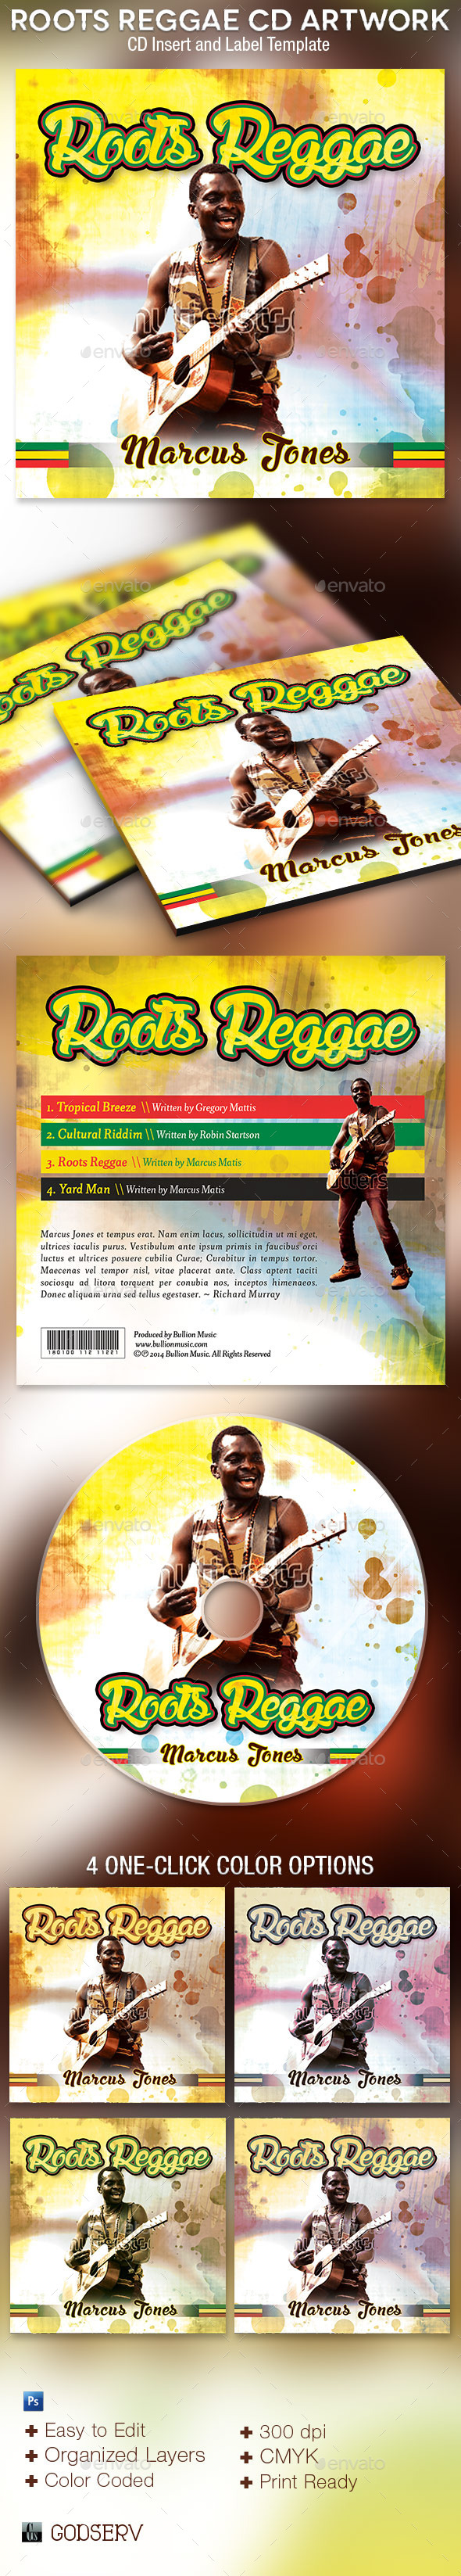 Roots Reggae CD Artwork Photoshop Template - CD & DVD Artwork Print Templates